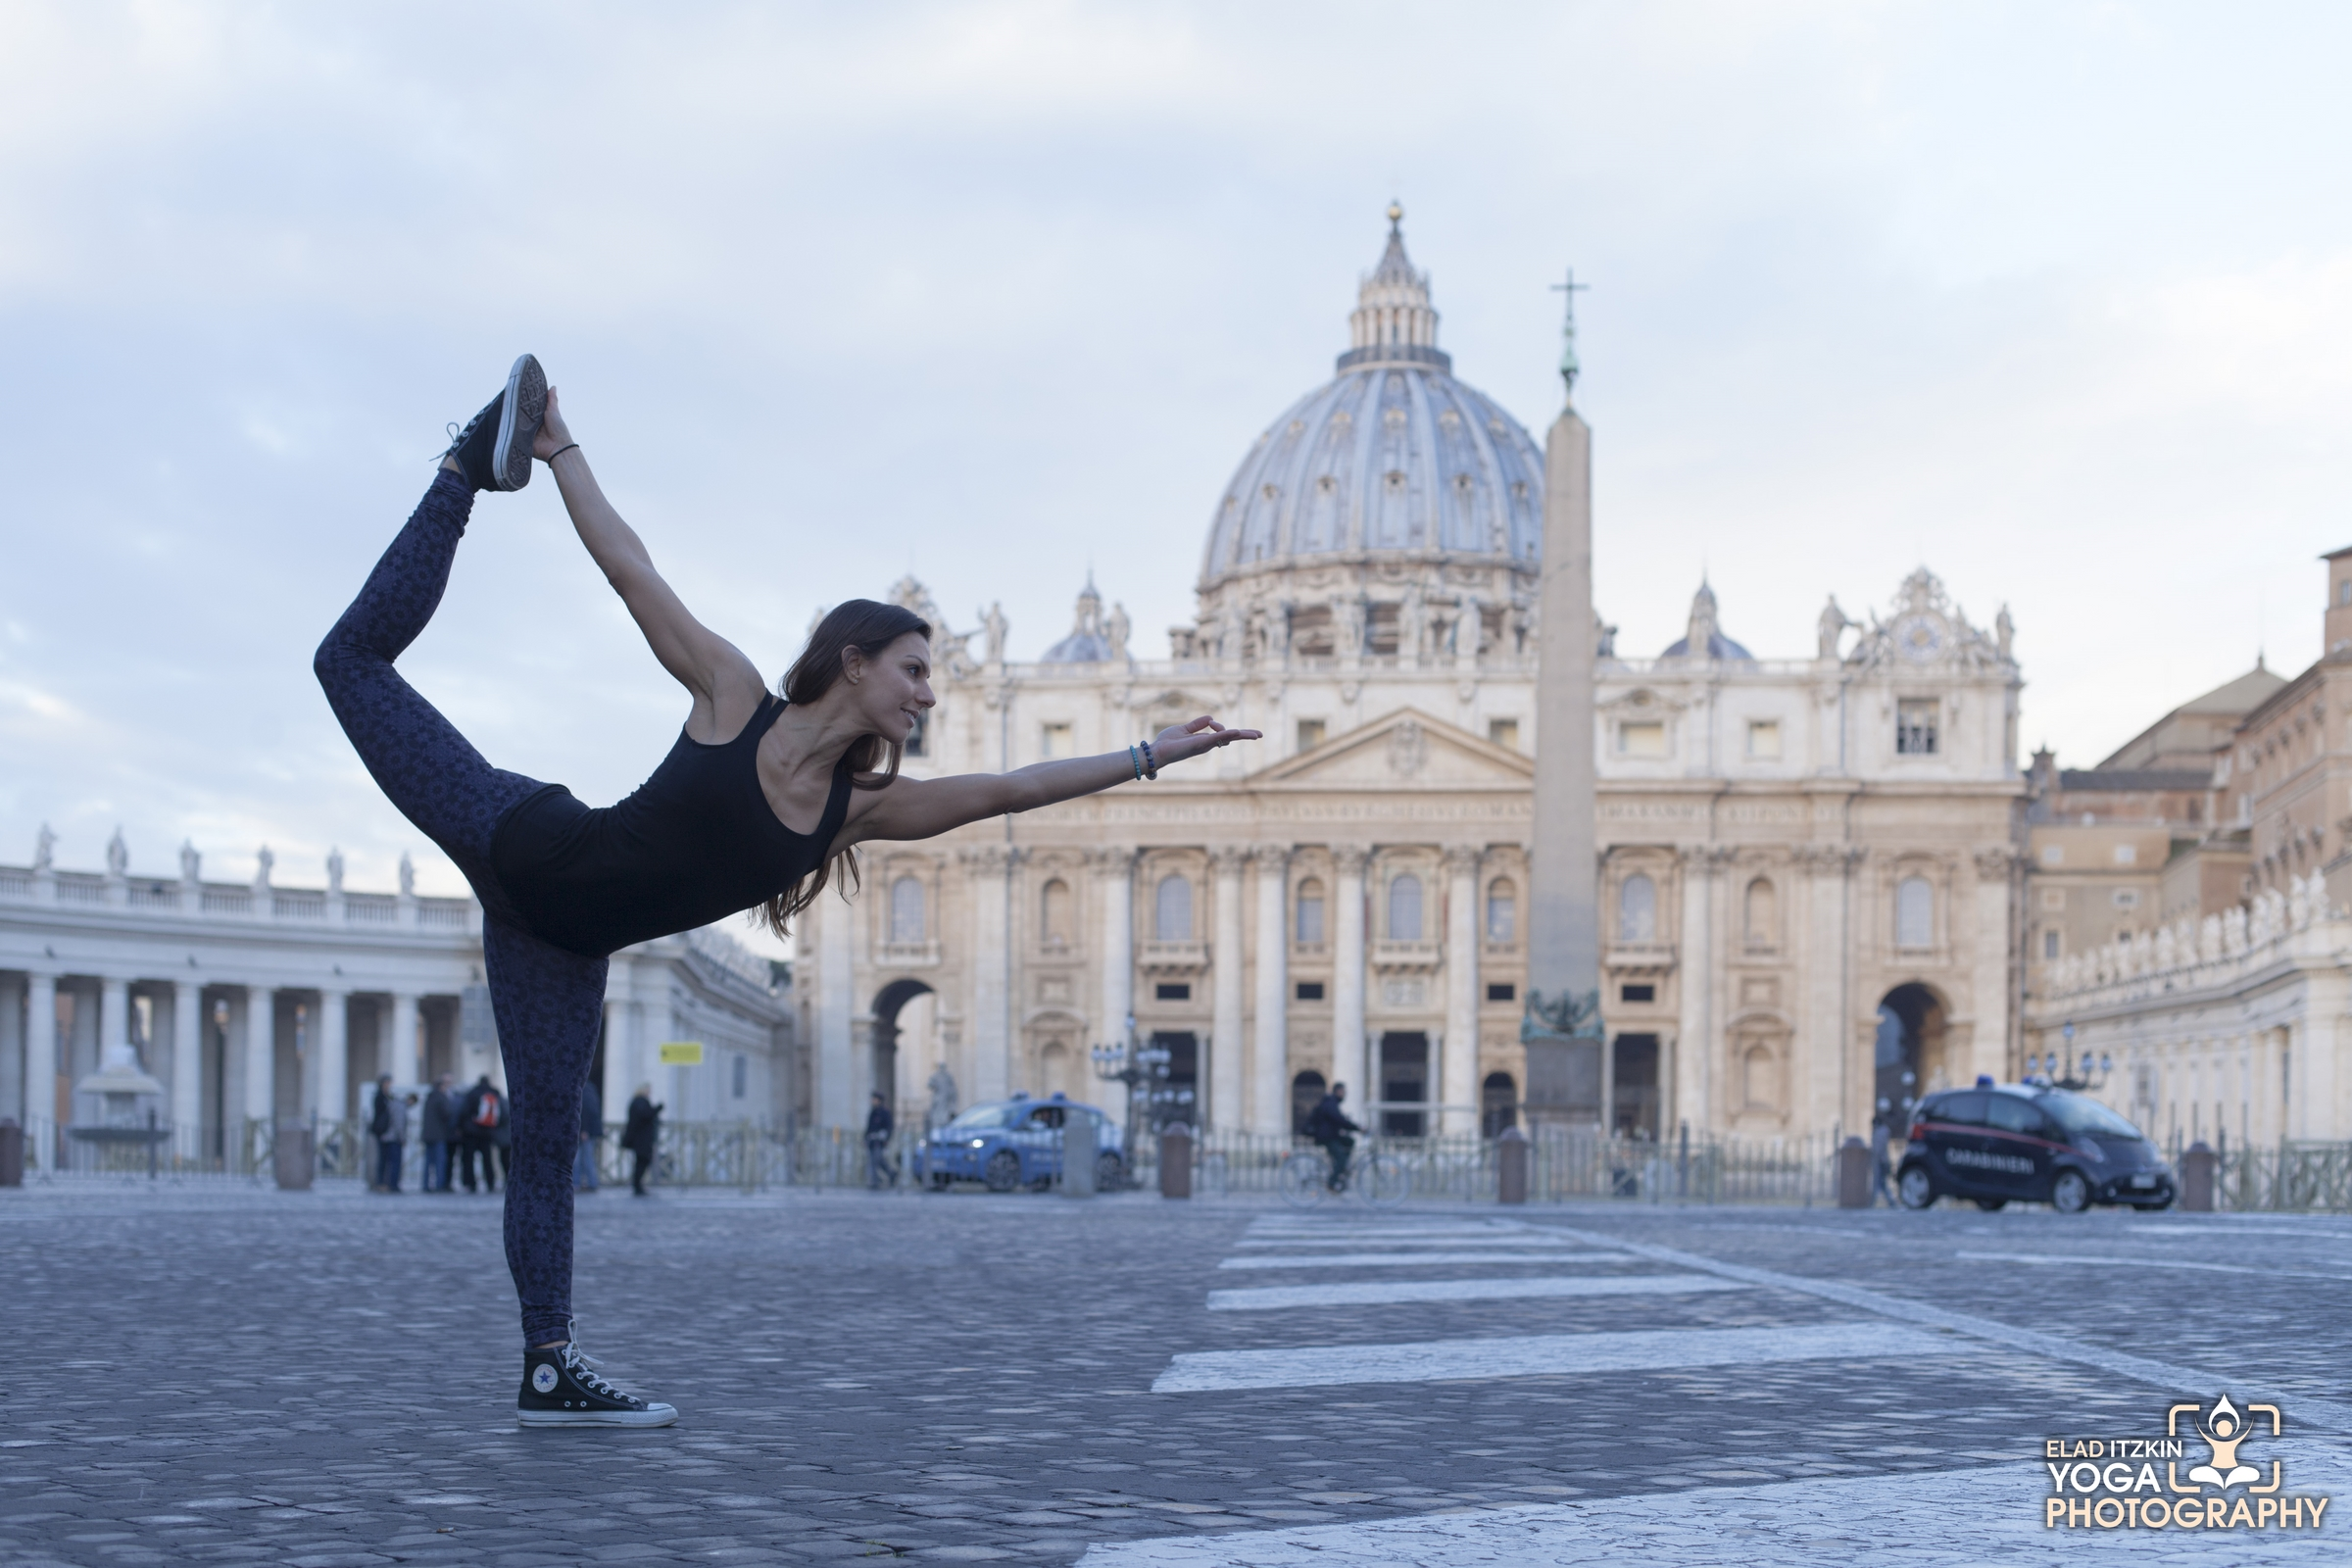 Vatican, Rome   | Photo by Elad Itzkin Yoga Photography | http://yoga.itzkin.com | @elad_itzkin_yoga_photography